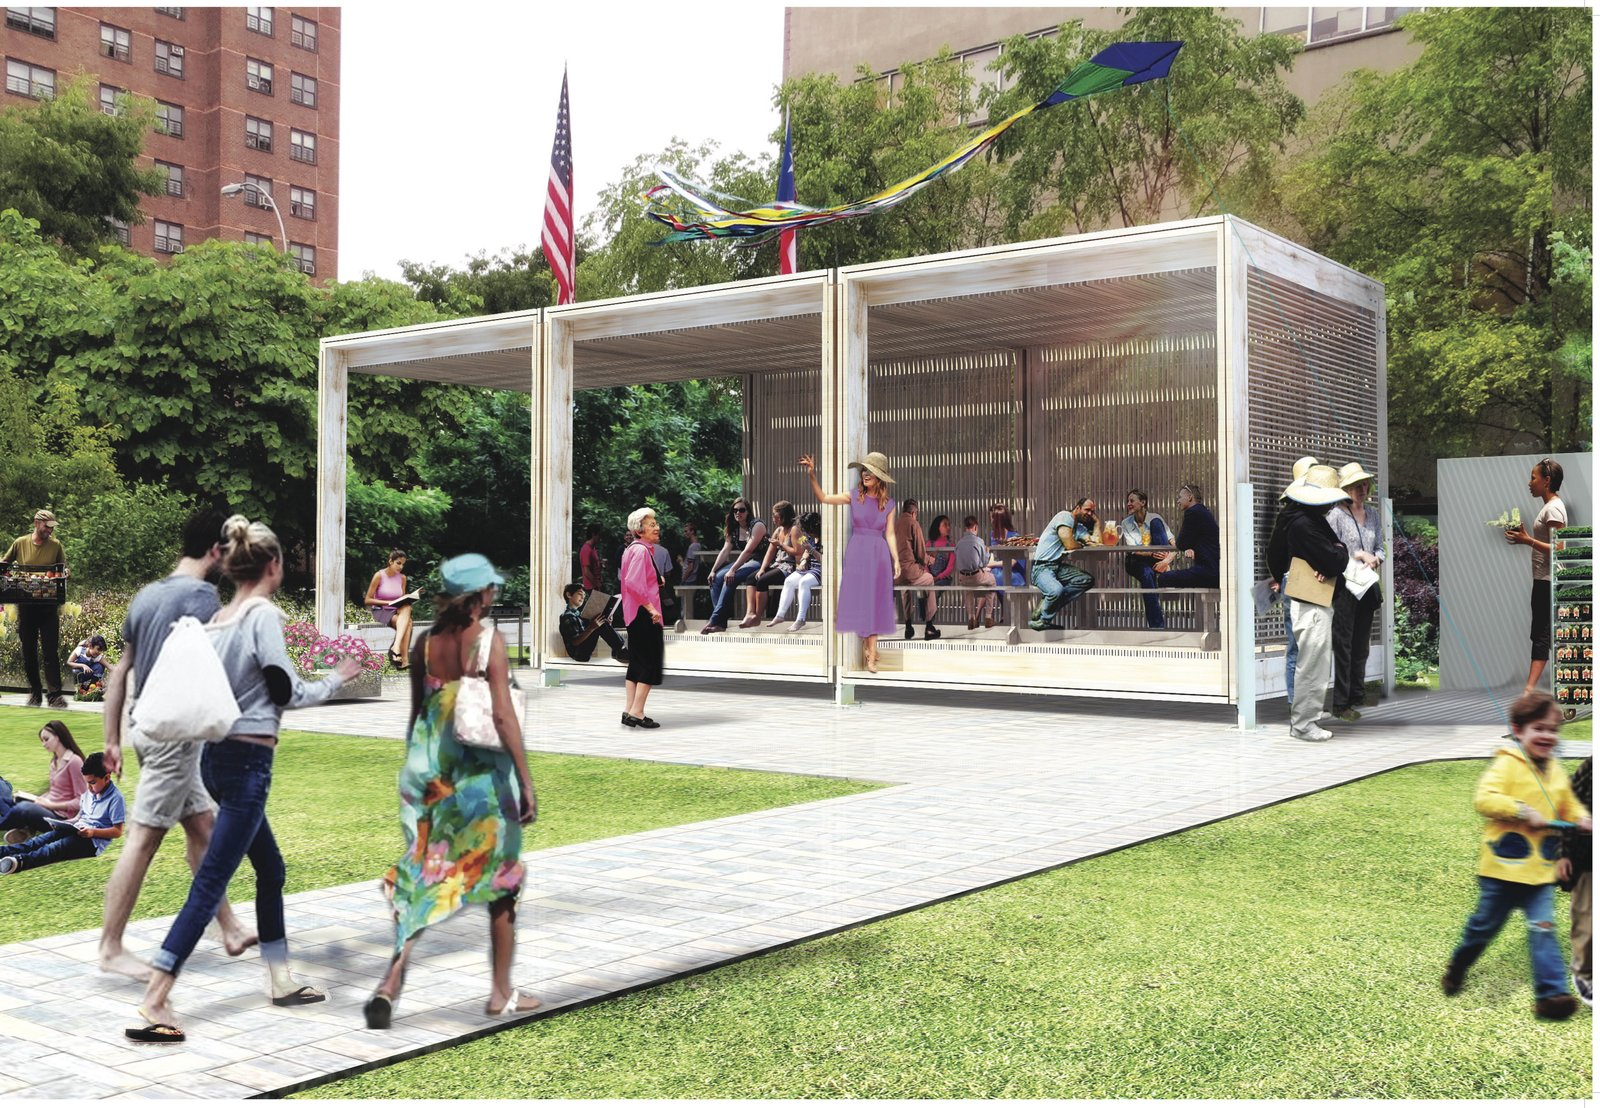 Designed by TEN Arquitectos, this casita will be built in the Willis Avenue Community Garden in the Bronx. The idea is that it will serve as a model to be adapted for community gardens elsewhere in New York City. Rendering courtesy of TEN Arquitectos.  Photo 1 of 1 in A Gathering Spot and Emergency Resource for New York's Community Gardens